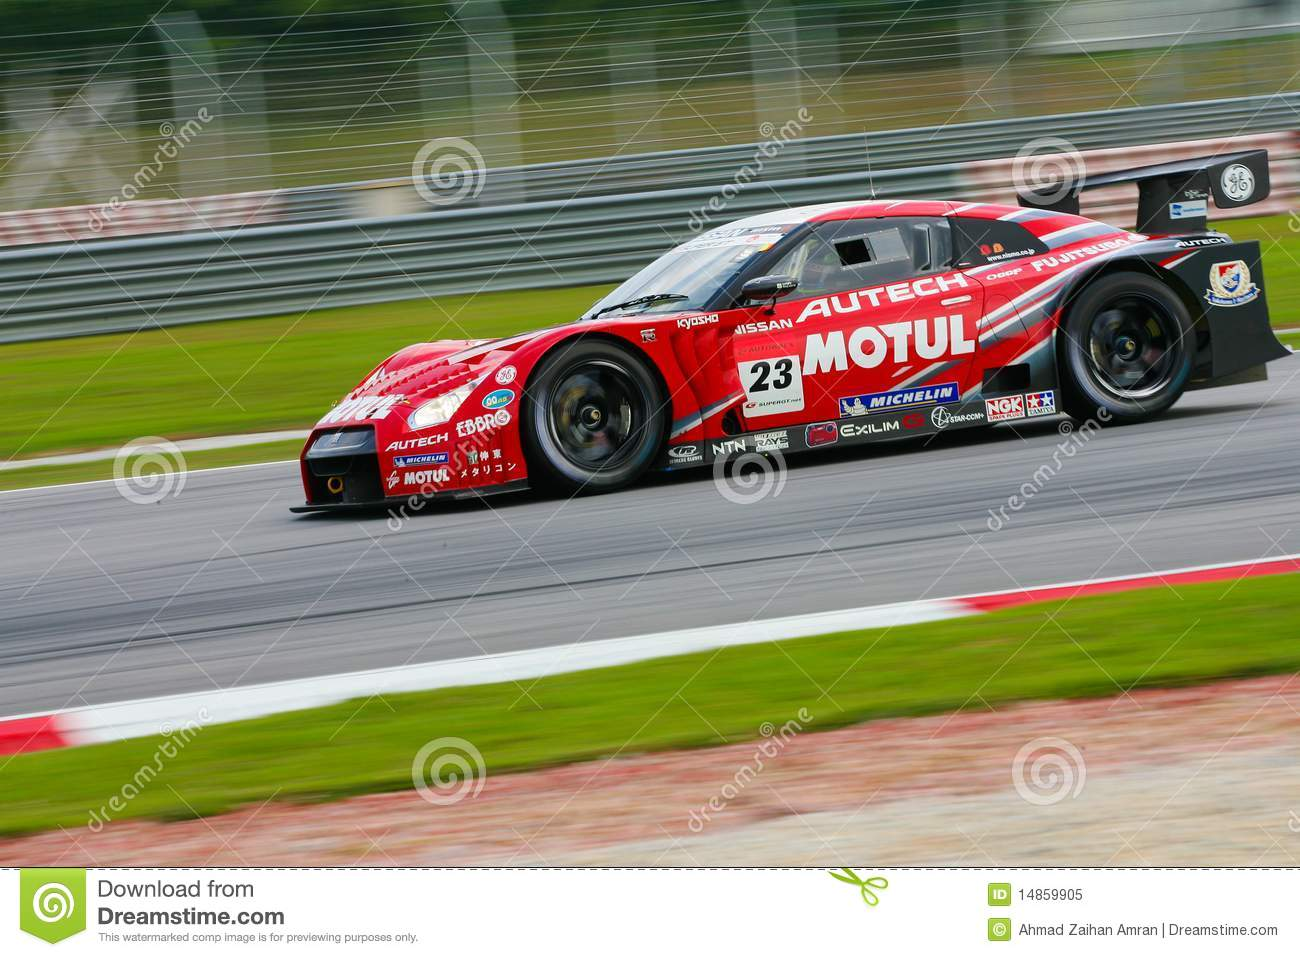 Nismo Team s in GT500 category